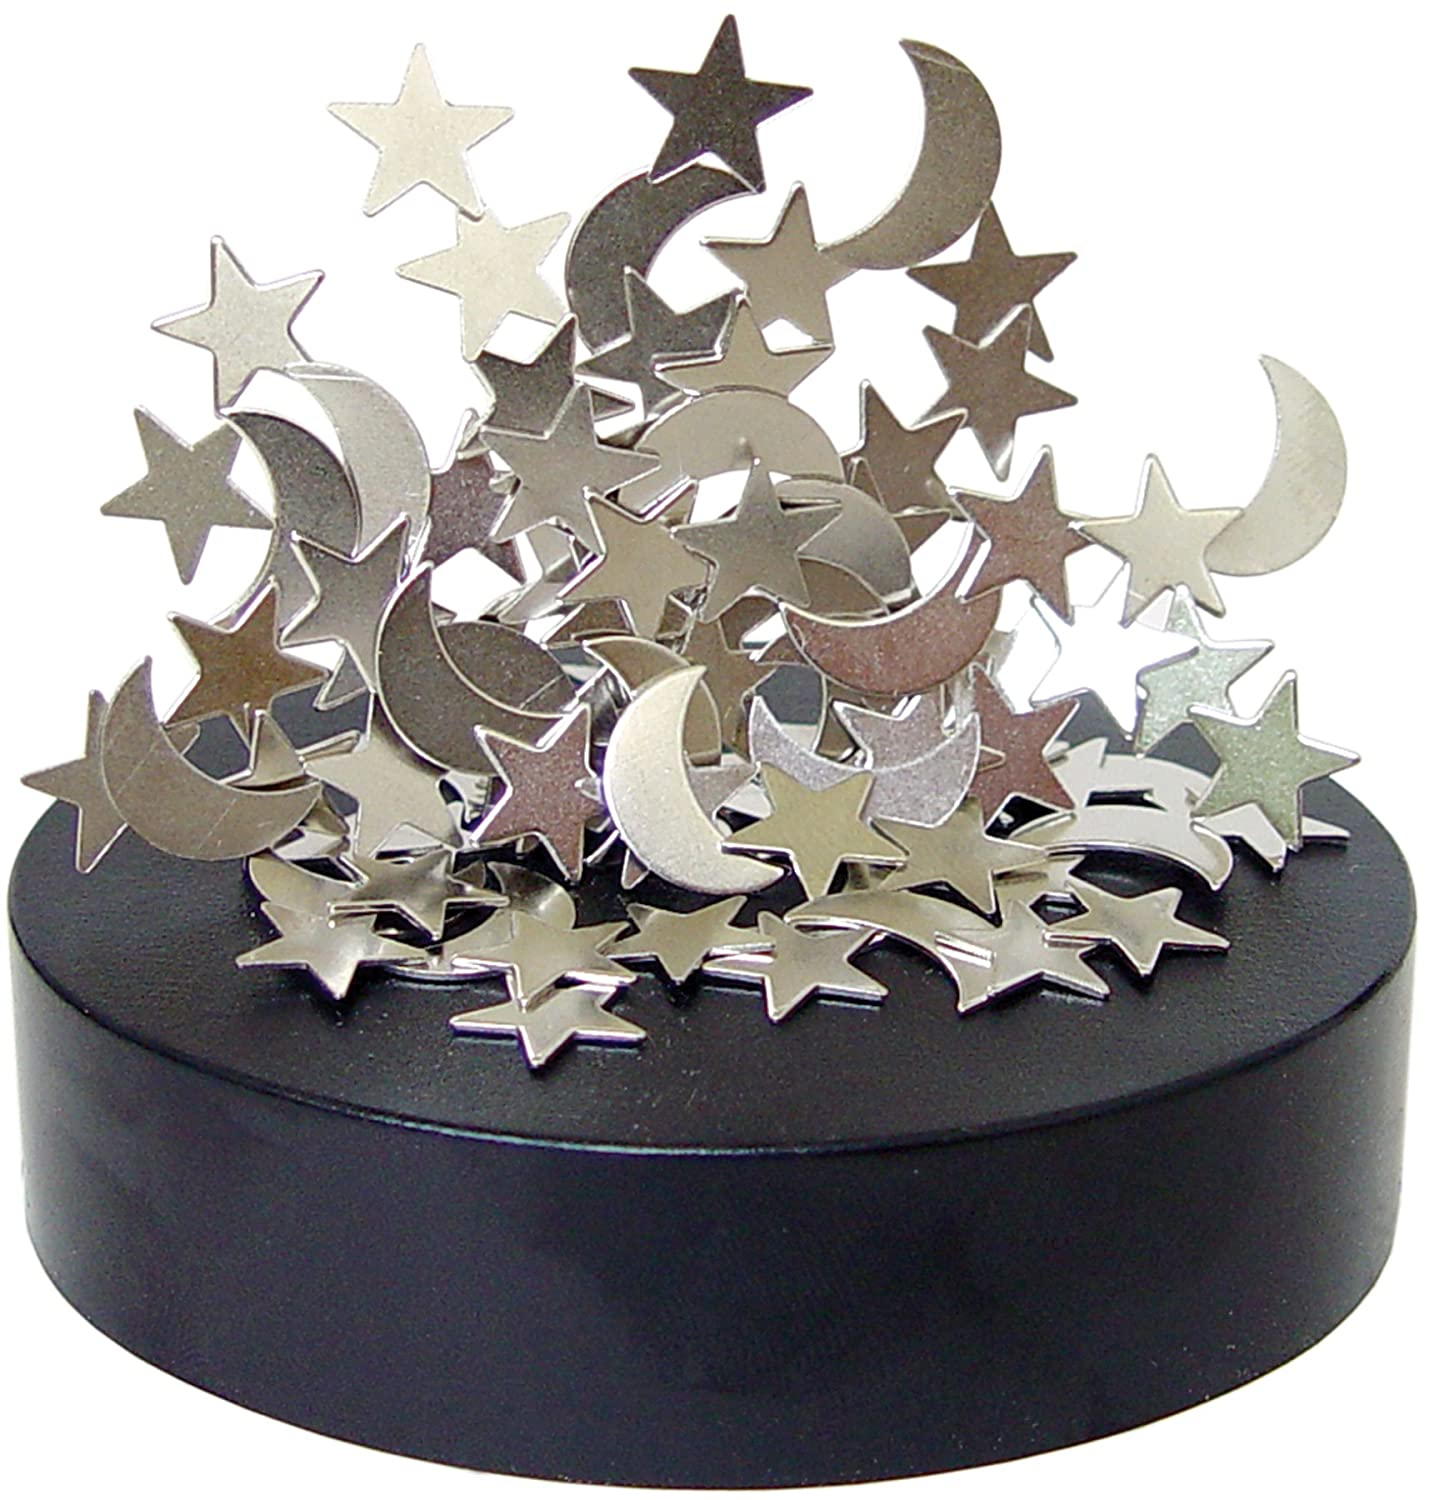 Amazon Magnetic Star and Moon Sculpture by ROCKYMART Toys